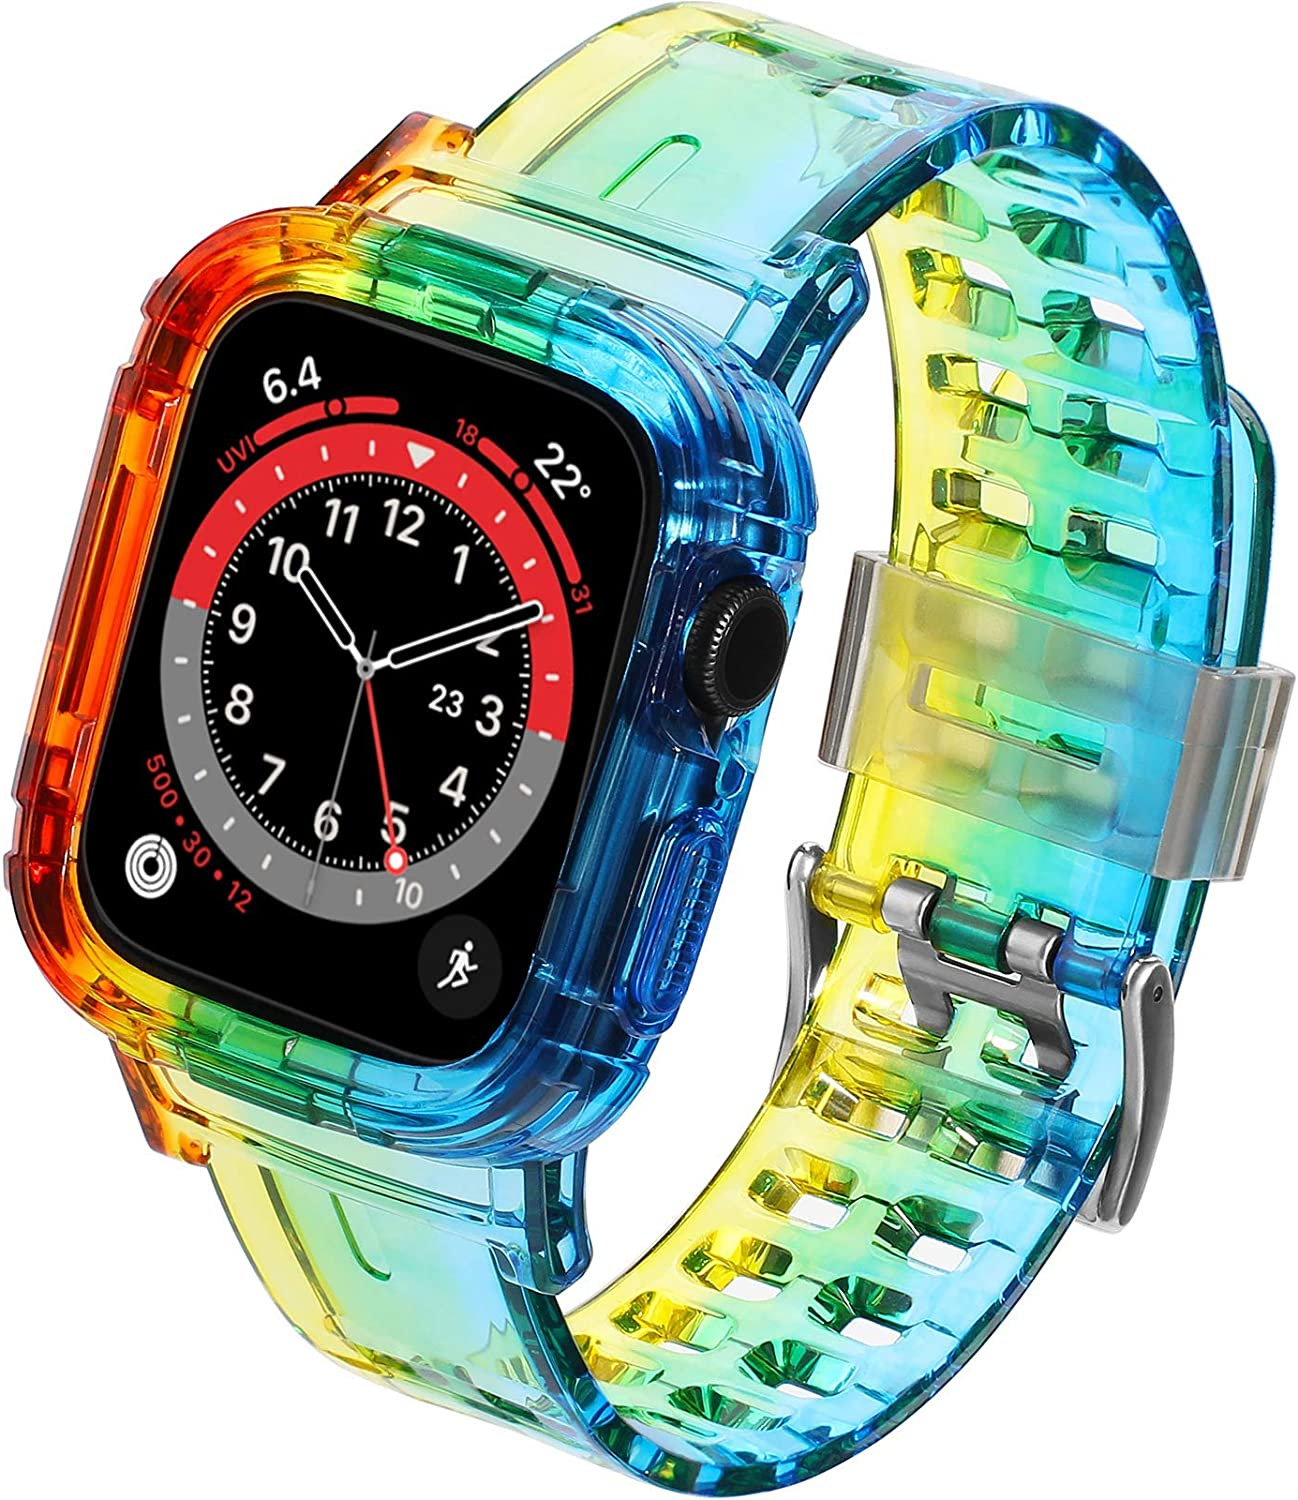 UNKNOK Compatible with Apple Watch Band 38mm 40mm 42mm 44mm Crystal Clear Men Women Bands for iWatch Series SE 6 5 4 3 2 1, Military Drop-Proof Protect Sports Wristband with Bumper Case